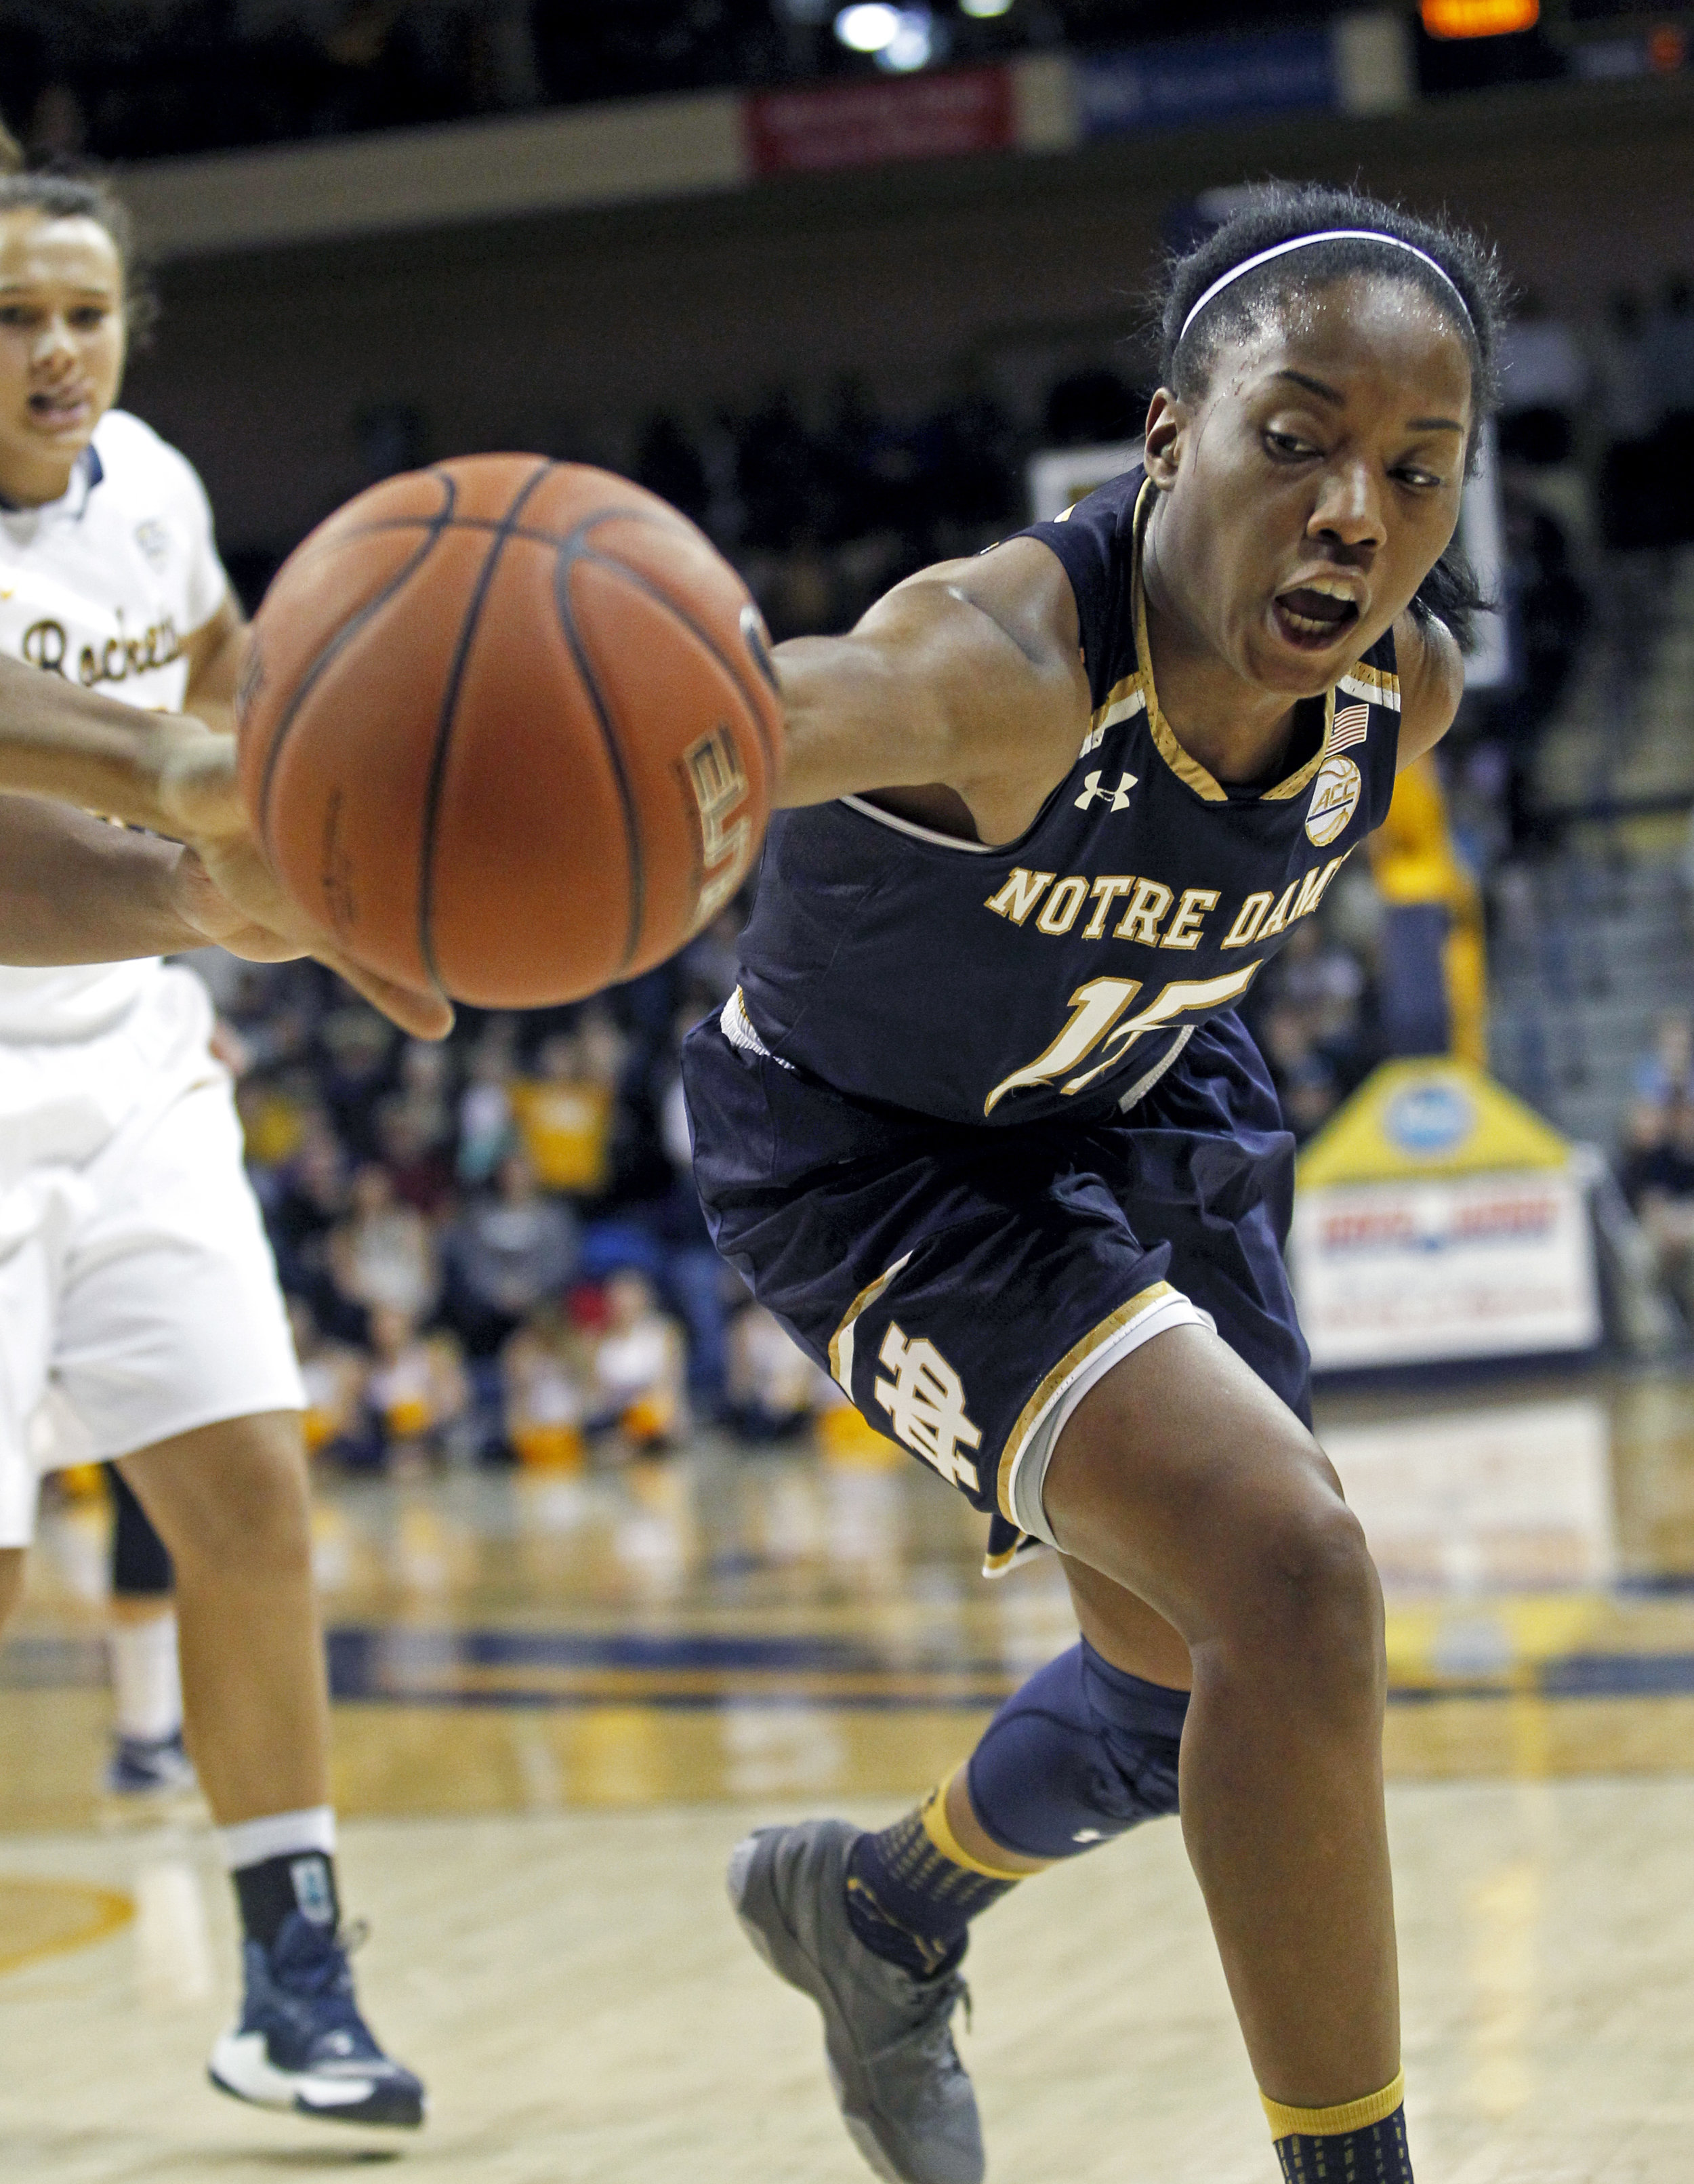 Notre Dame guard Lindsay Allen (15) reaches for a loose ball in an attempt to keep it from going out of bounds during the women's basketball game at Savage Arena on the University of Toledo's campus on Sunday, Dec. 18, 2016.